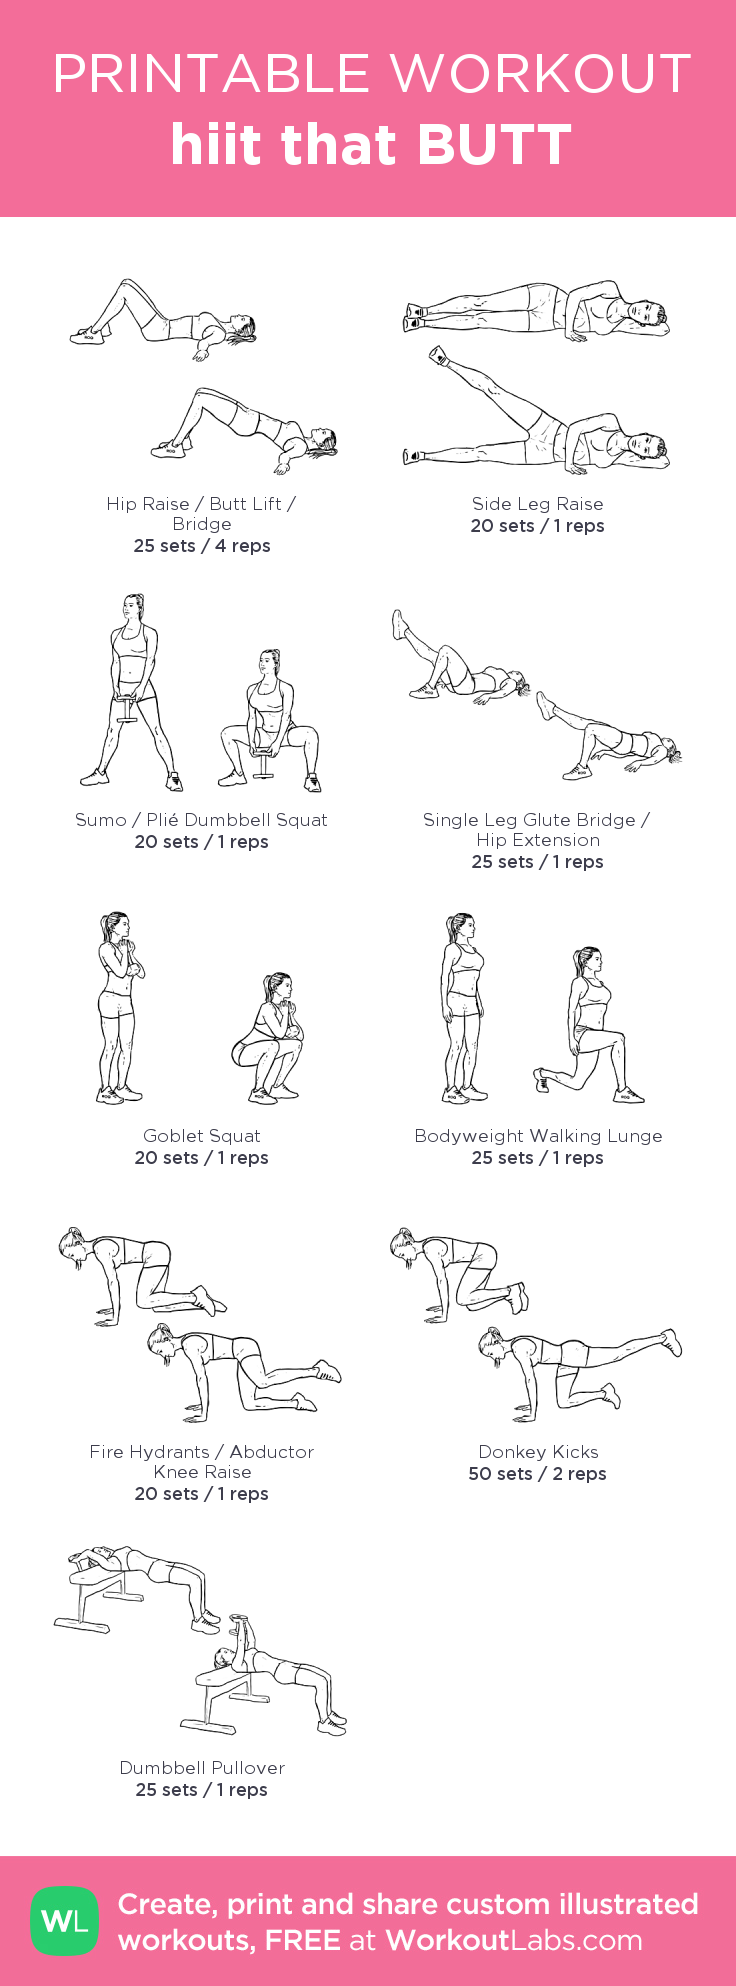 hiit that BUTT – my custom workout created at WorkoutLabs.com • Click through to download as printable PDF! #customworkout